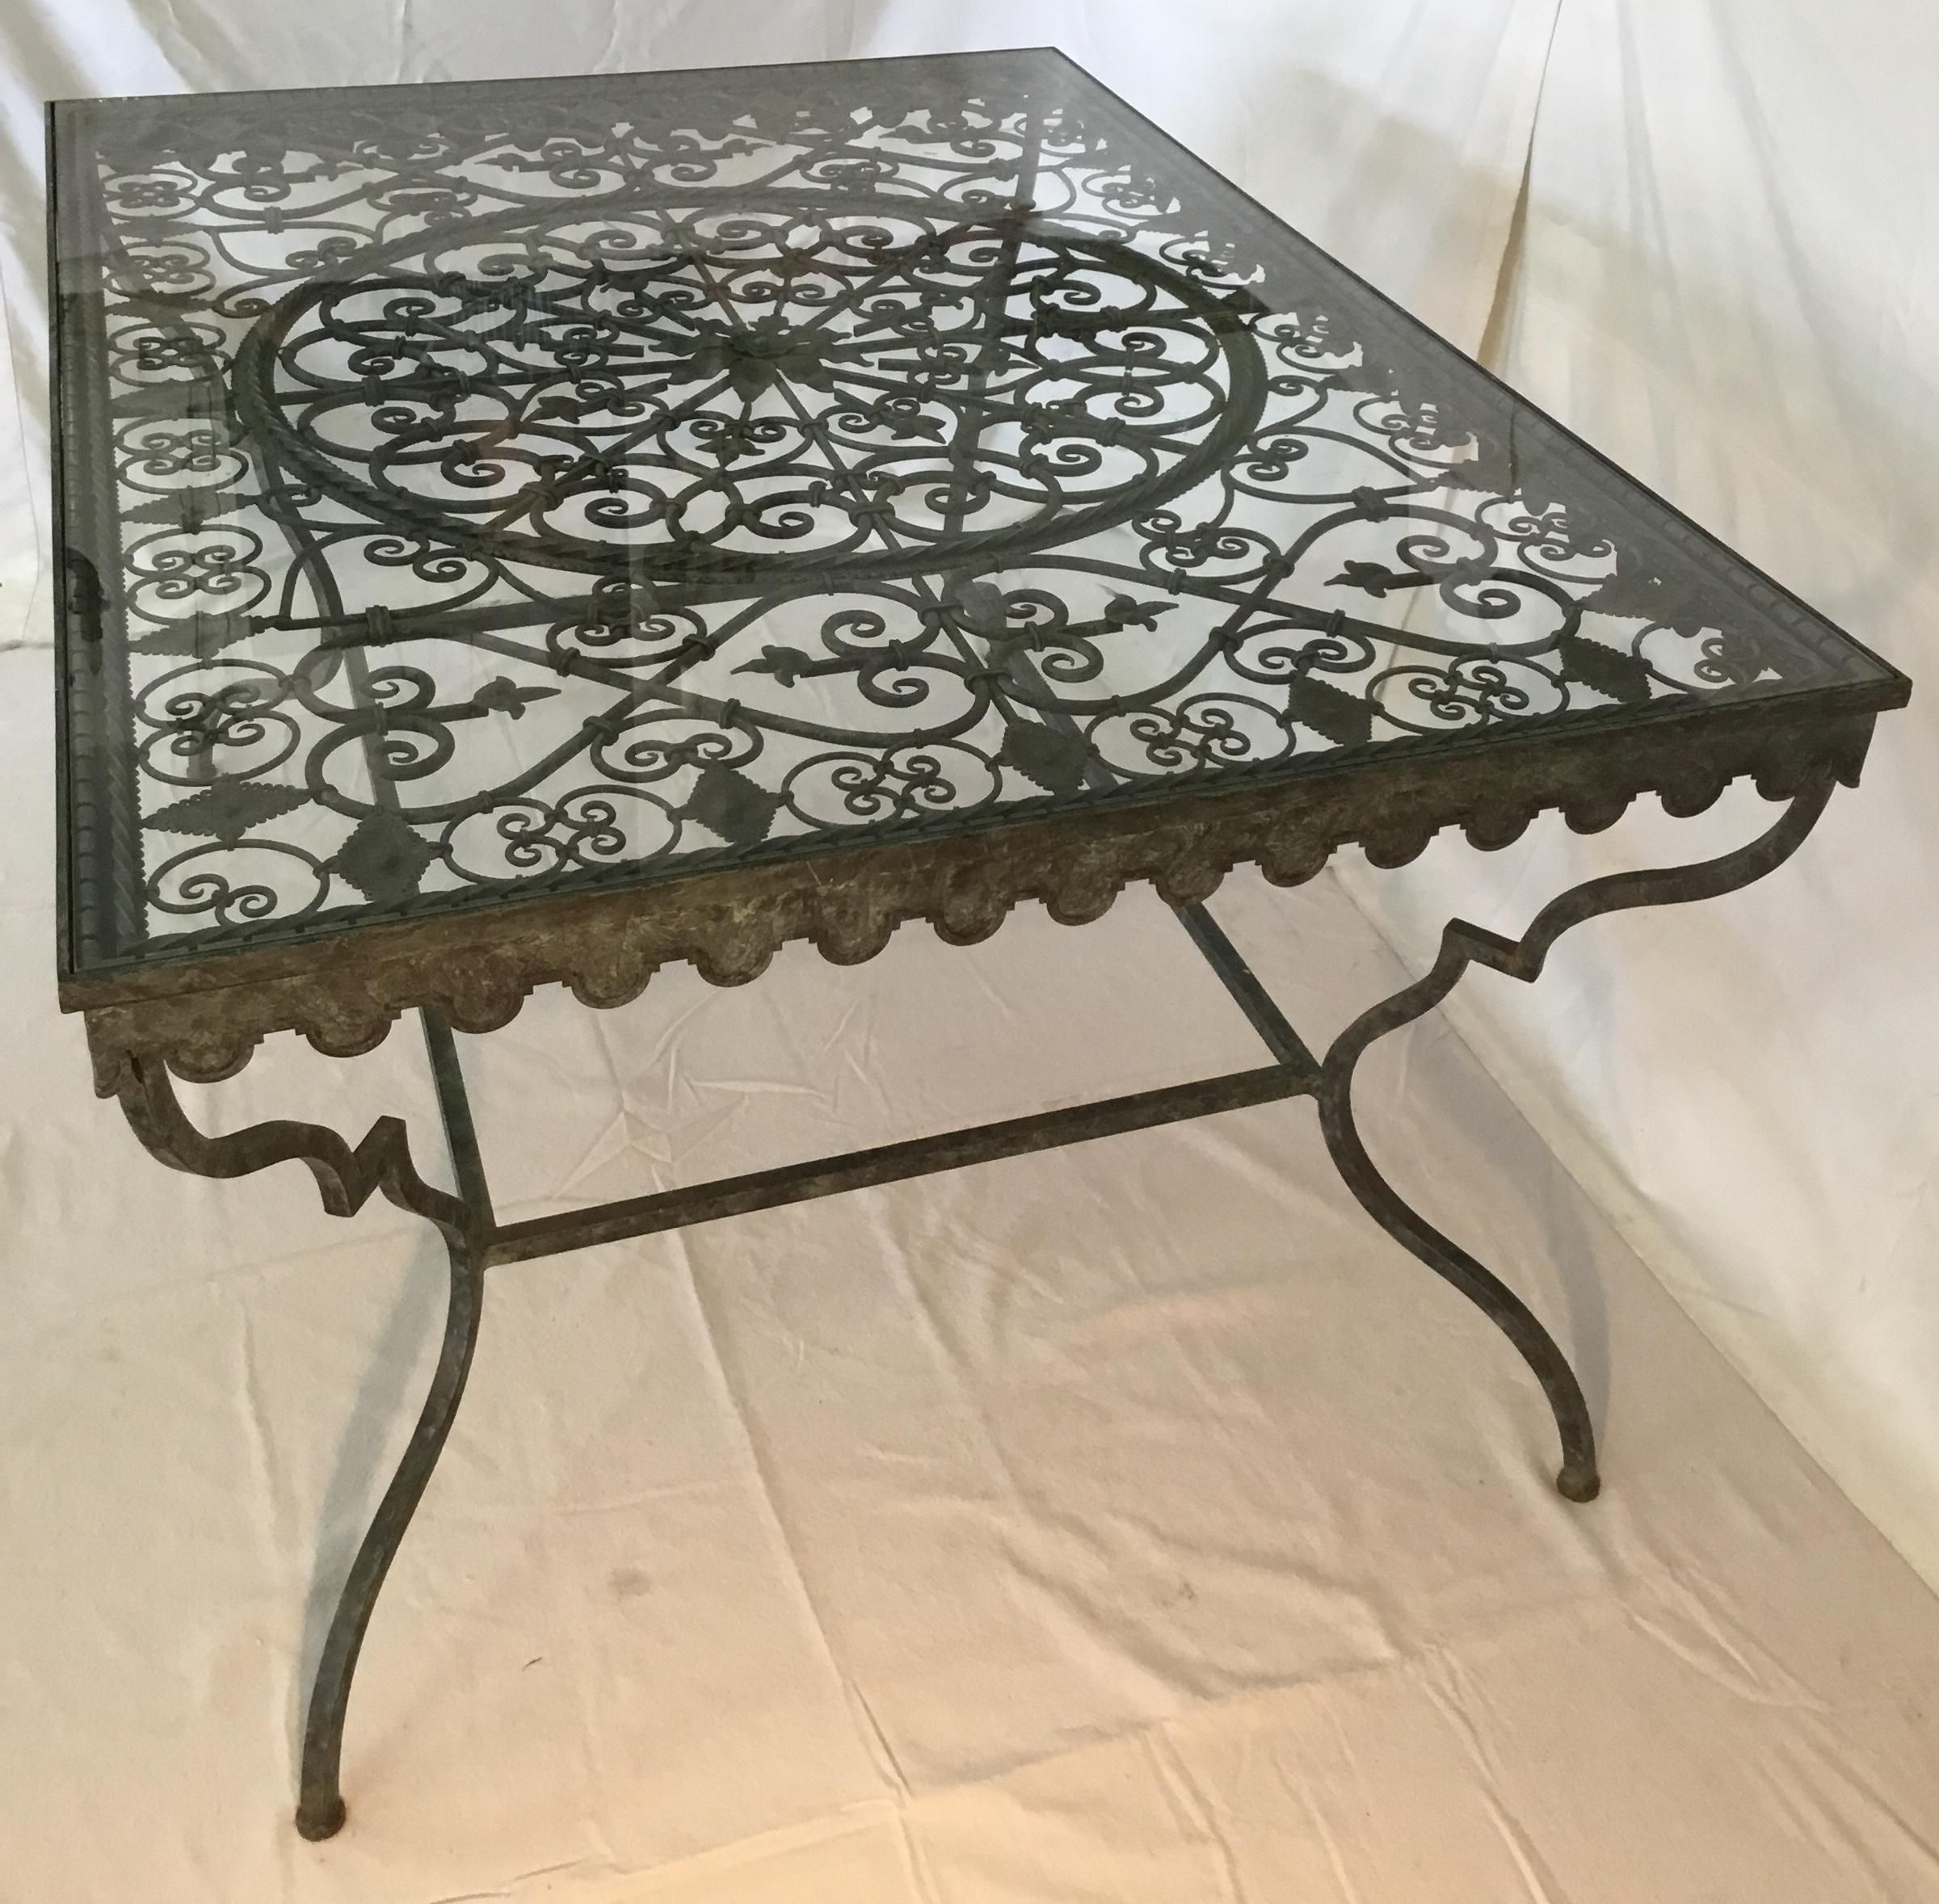 1940s French Provincial Iron Table With Glass Top Iron Table Wrought Iron Furniture Iron Chair